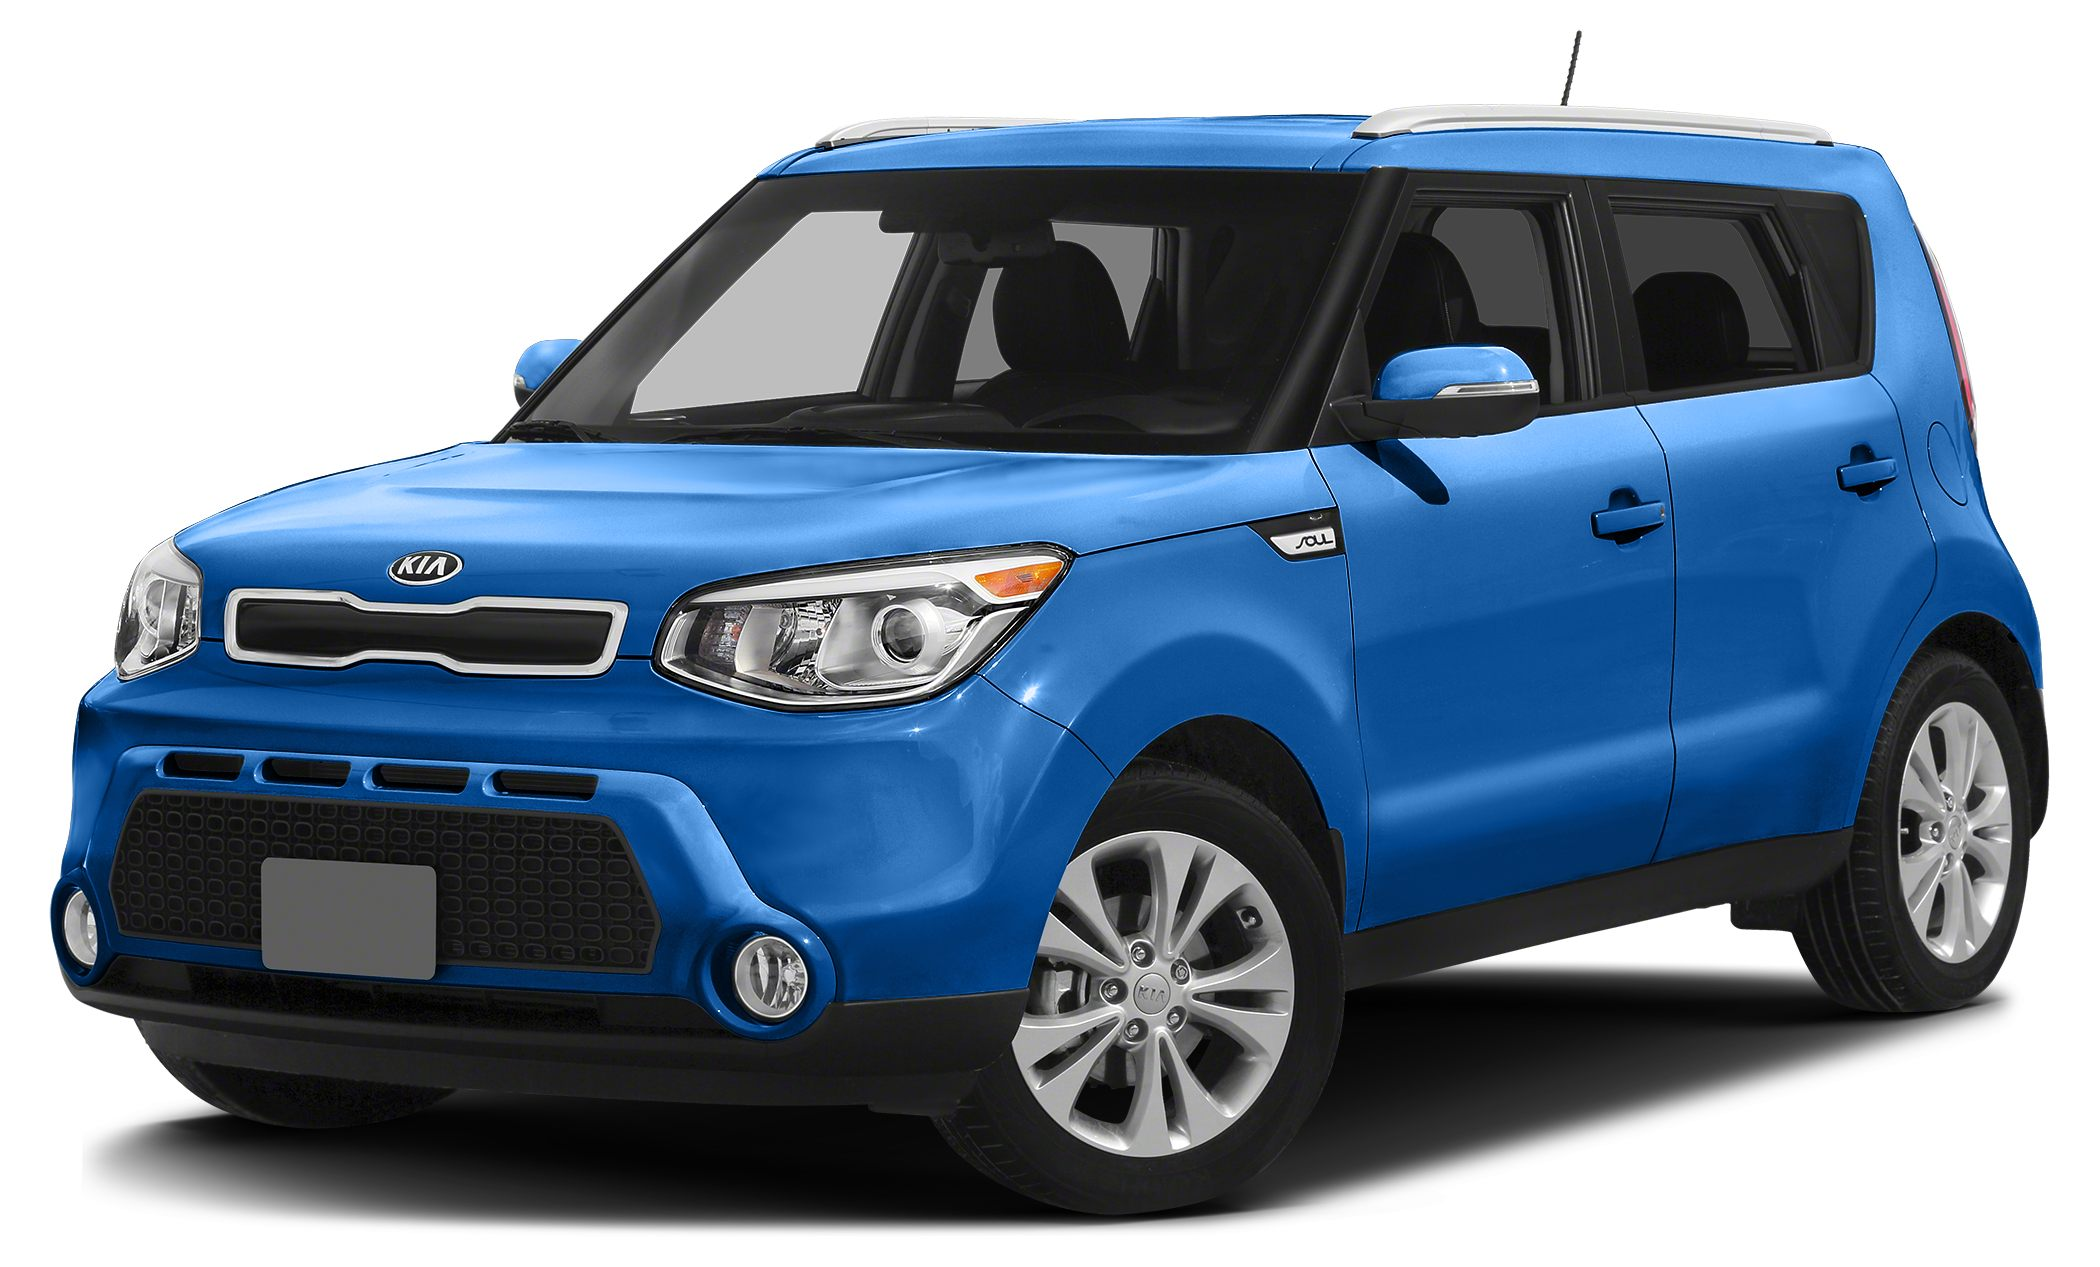 2016 Kia Soul  PLUS PACKAGE PREMIUM WHEELS BEAUTIFUL CARIBBEAN BLUE COLOR FL